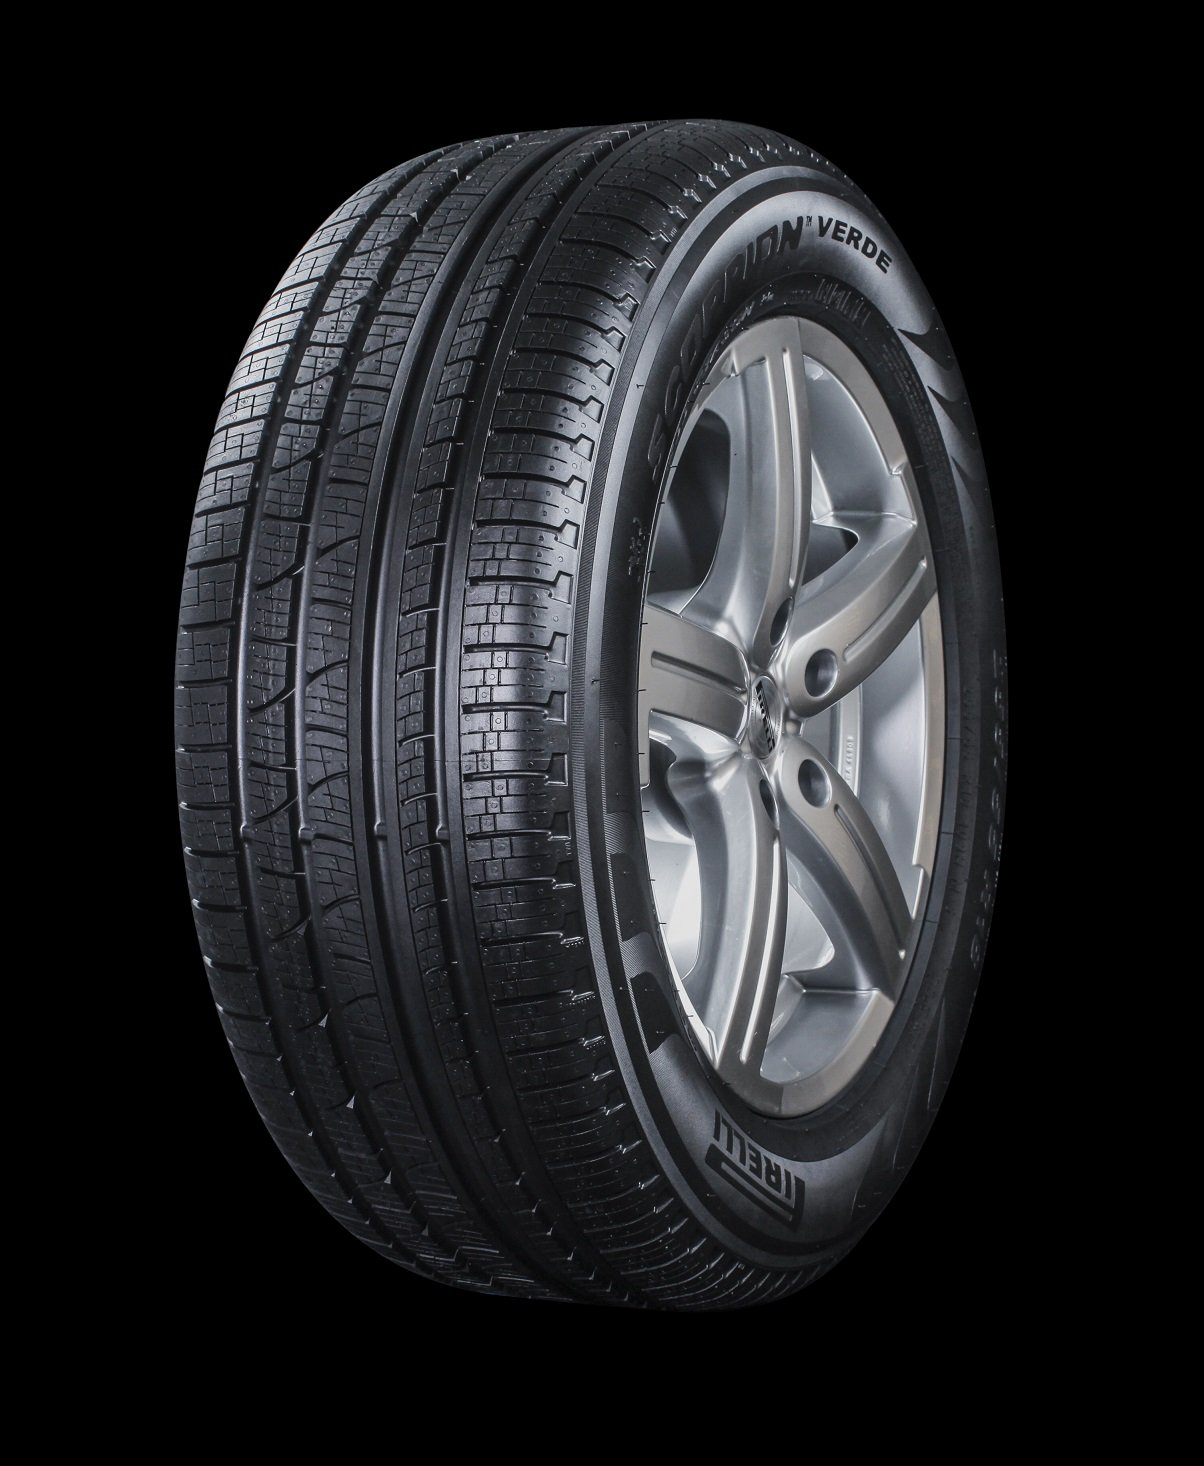 Pirelli SCORPION VERDE Season Plus Touring Radial Tire - 235/55R19 105V